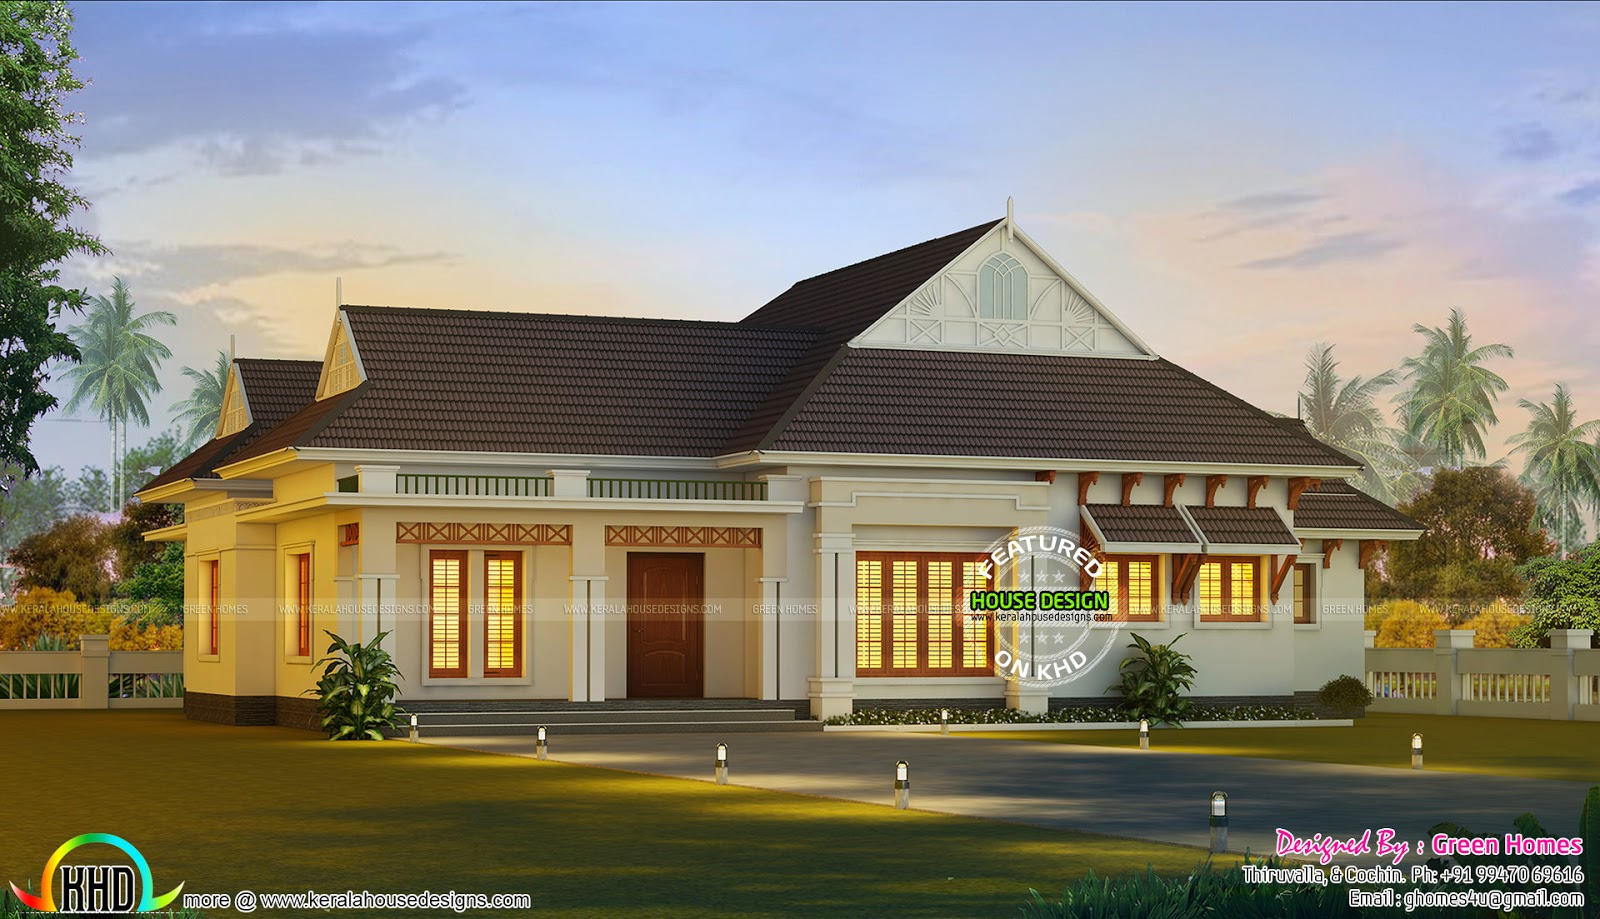 Superior nalukettu house architecture kerala home design bloglovin Home architecture blogs